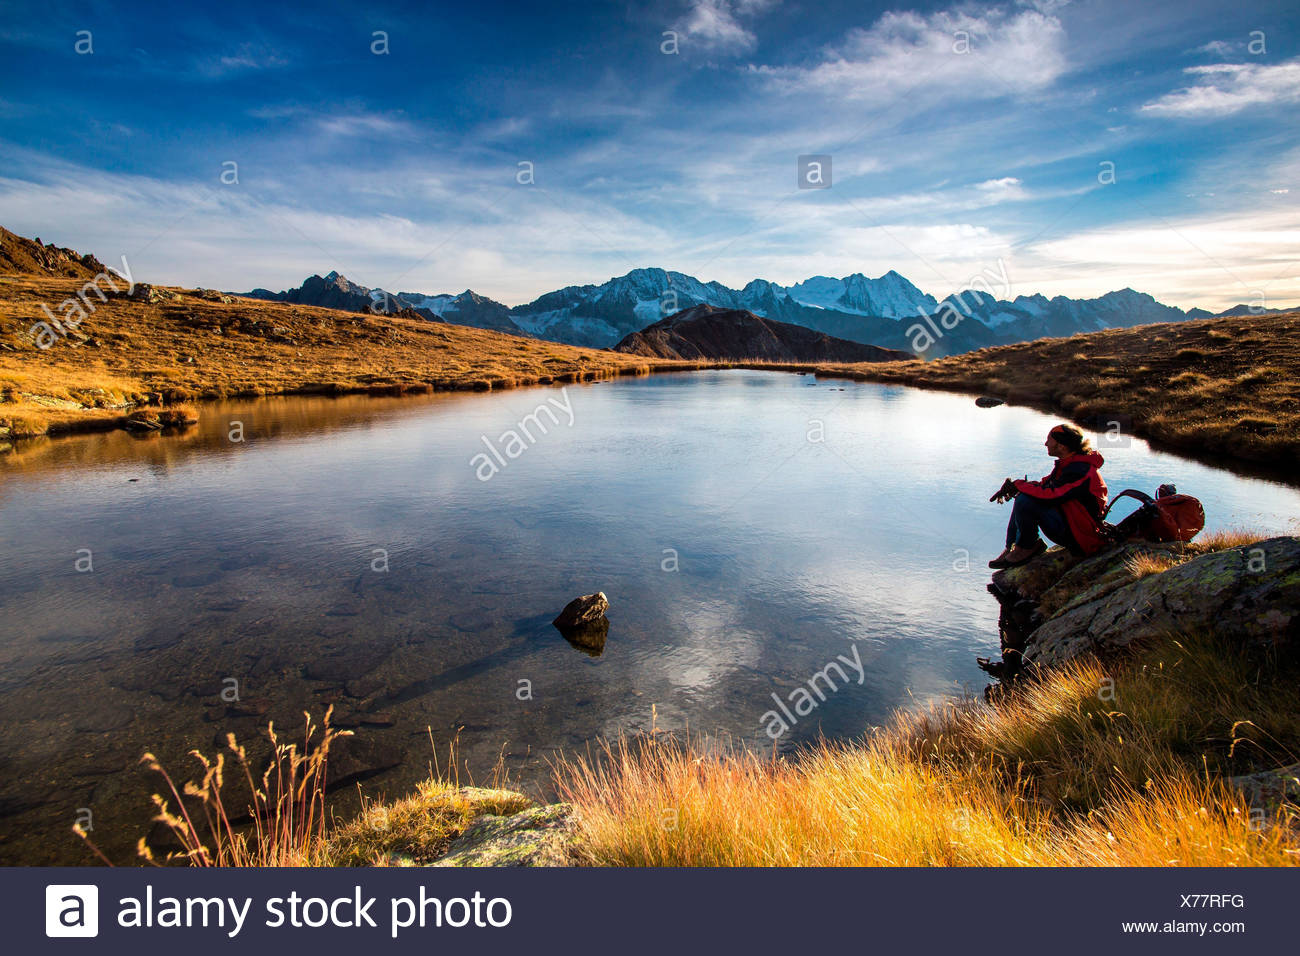 A hiker enjoying the first daylights in front of the landscape of Adamello-Presanella - Tonale mount, Lombardy, Italy. Europe - Stock Image